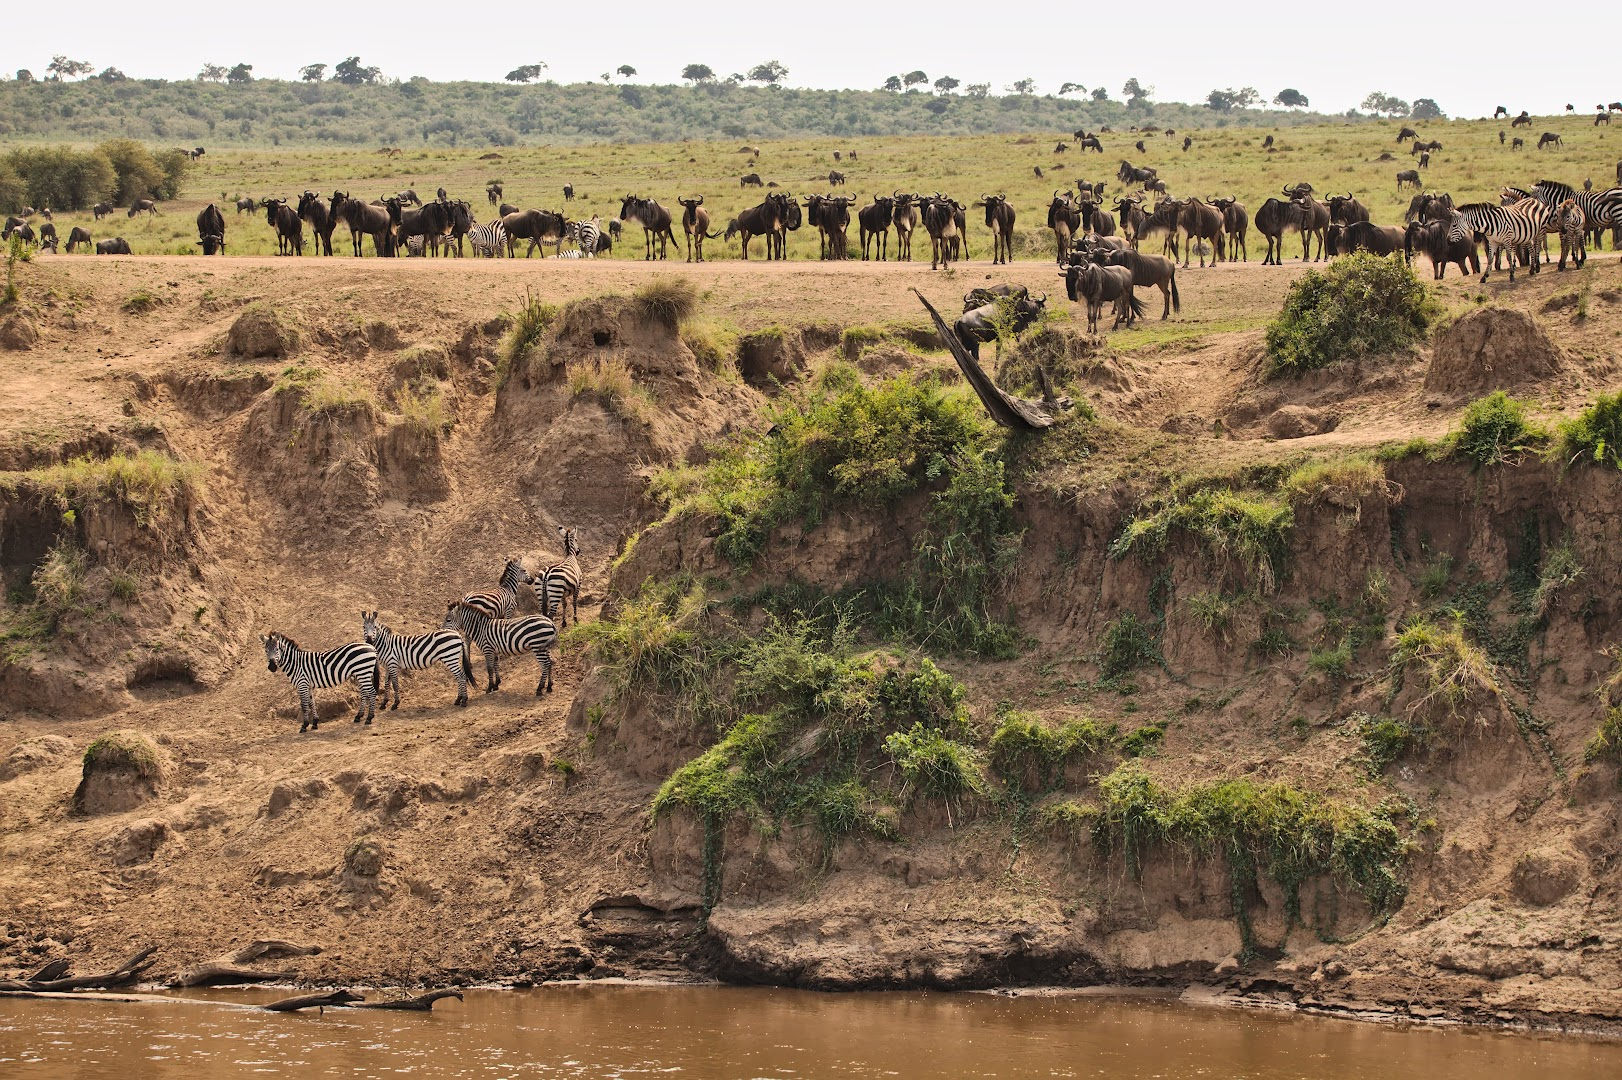 Animals preparing for the great migration over Mara river